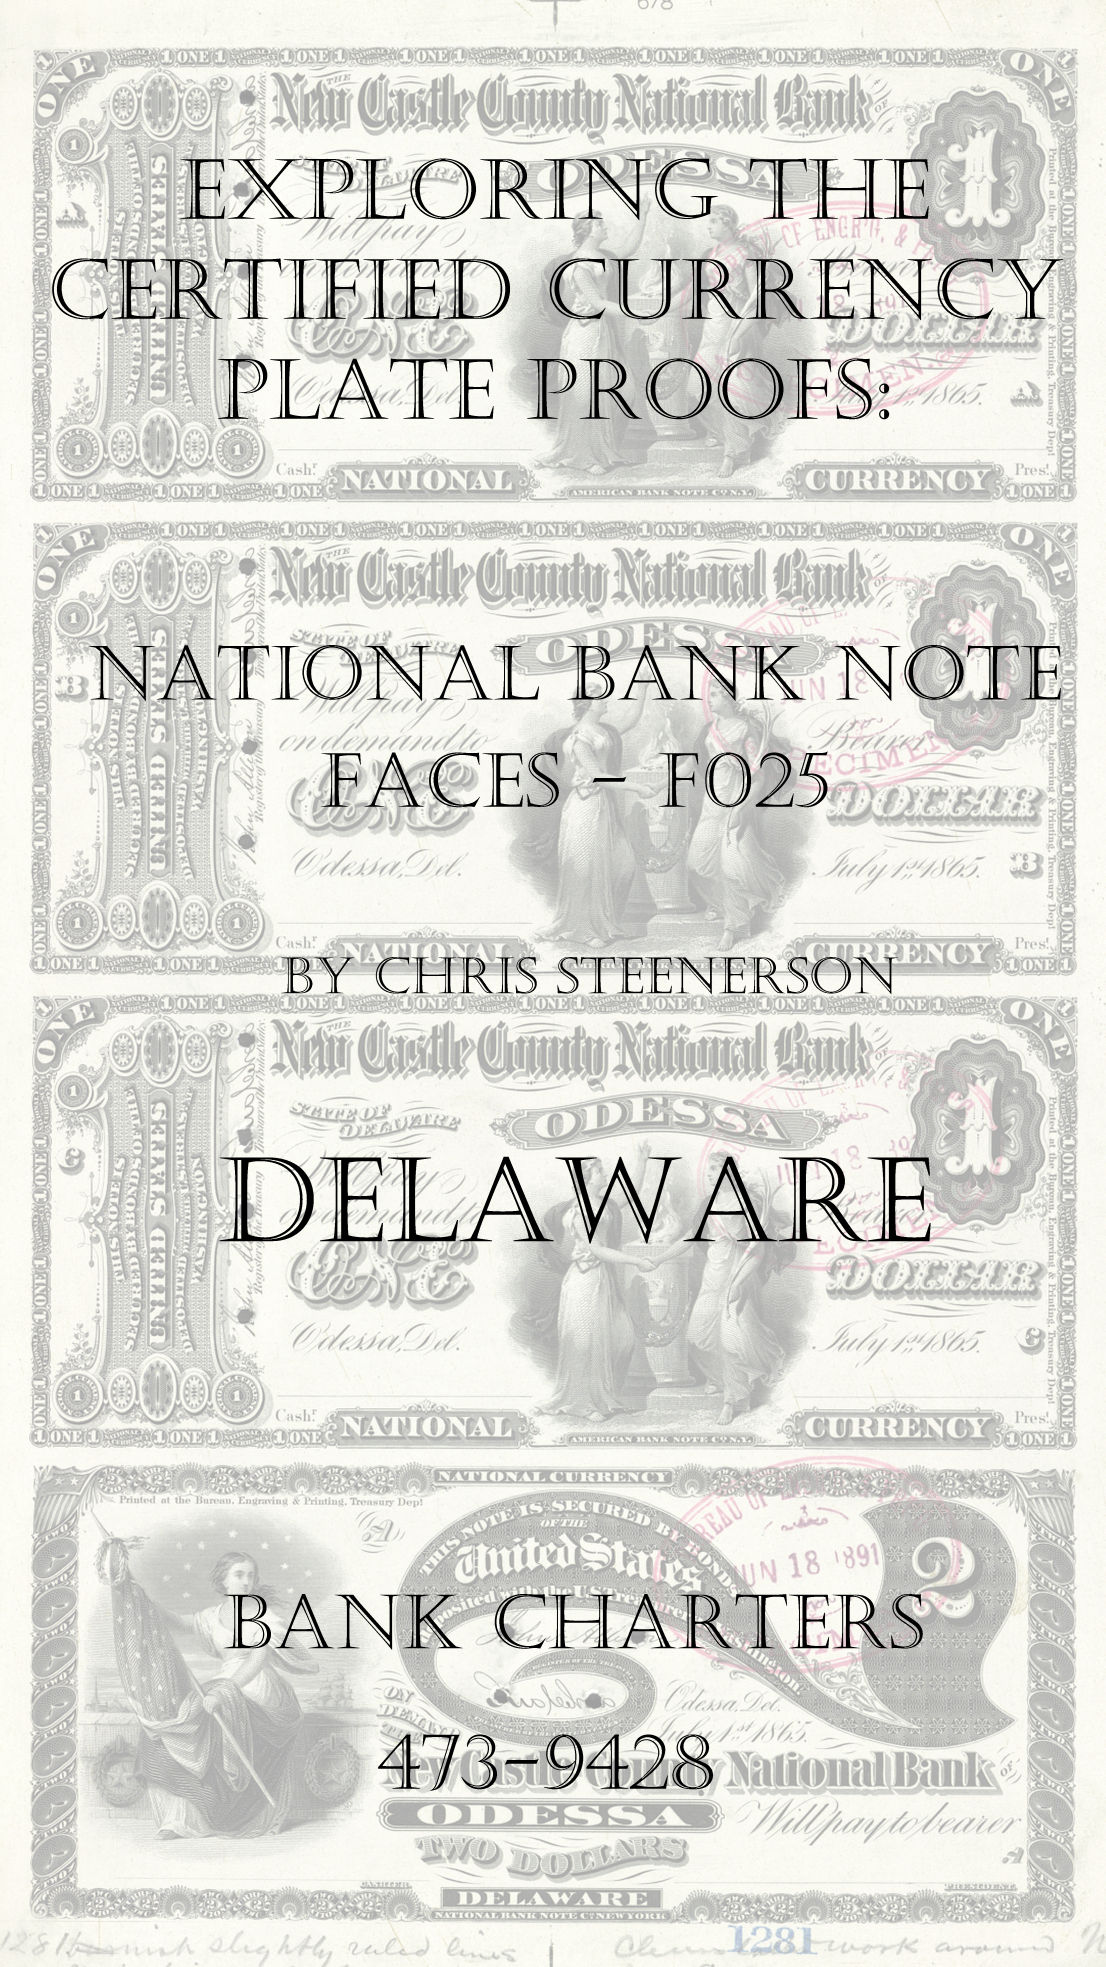 Delaware National Bank Note Currency Proofs